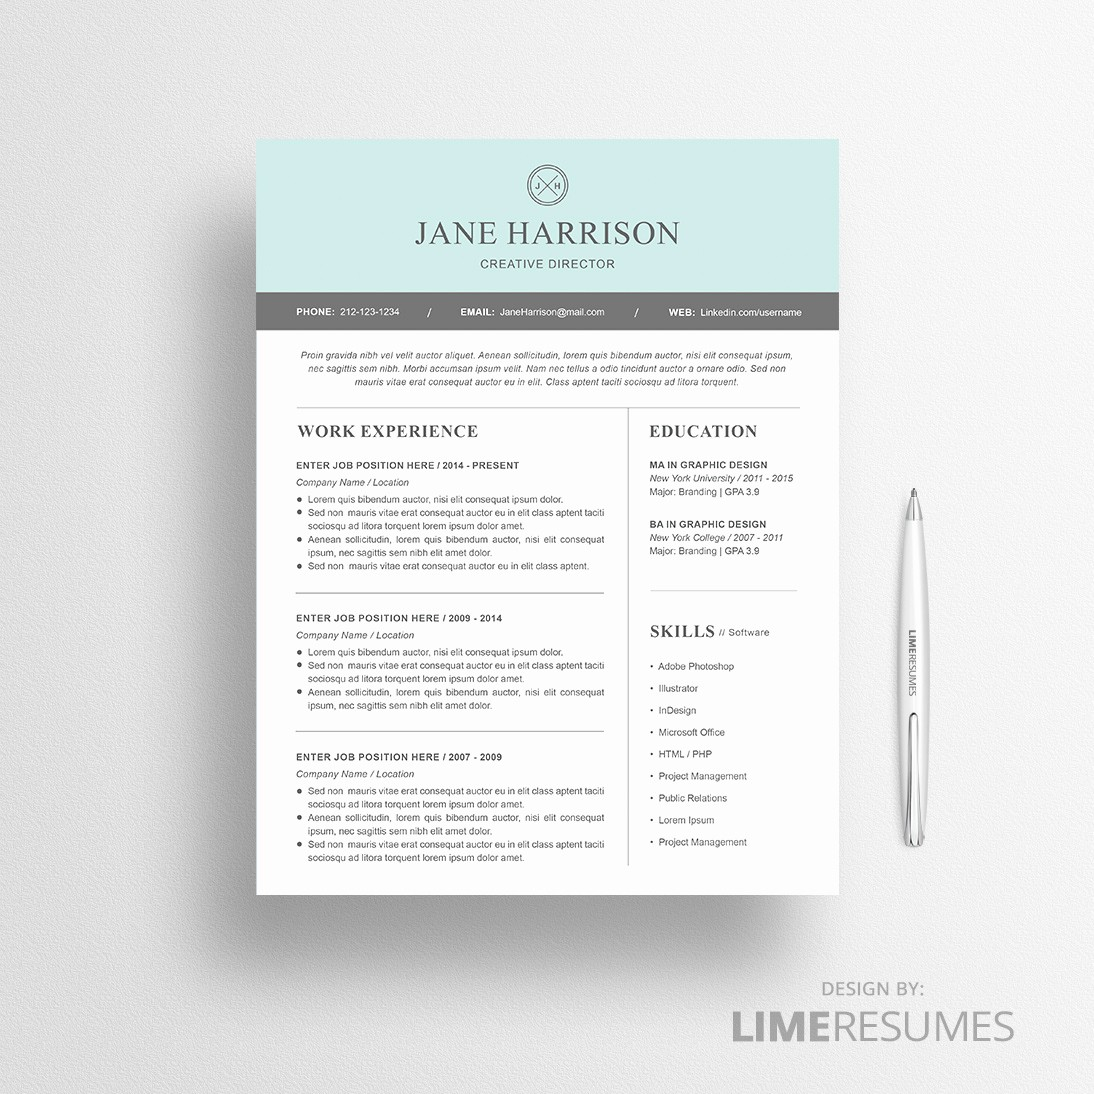 Professional Resume Templates Microsoft Word Elegant Modern Resume Template for Microsoft Word Limeresumes